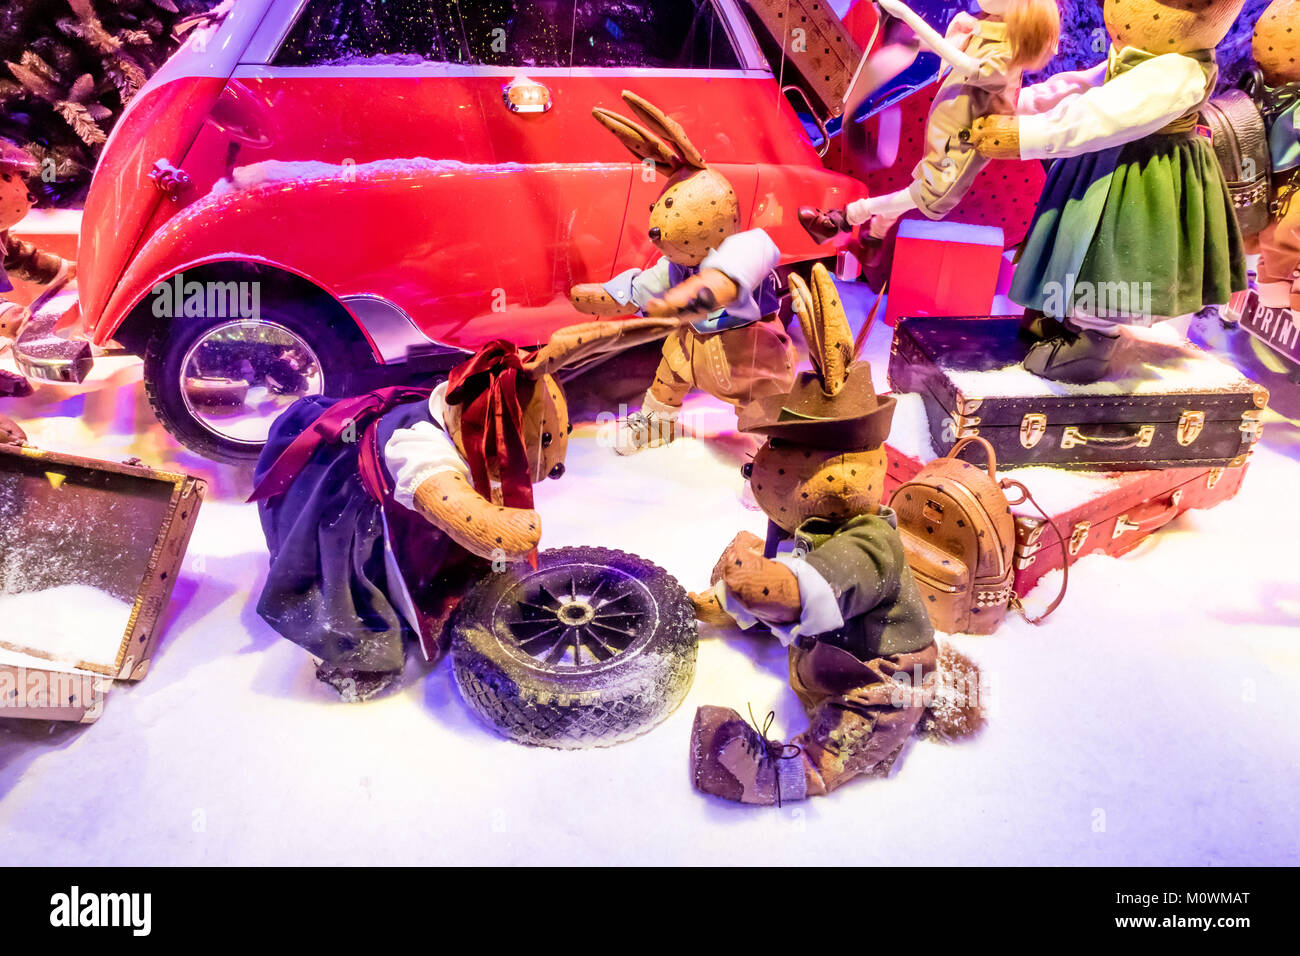 Traditional Christmas muppet show in Paris - Stock Image